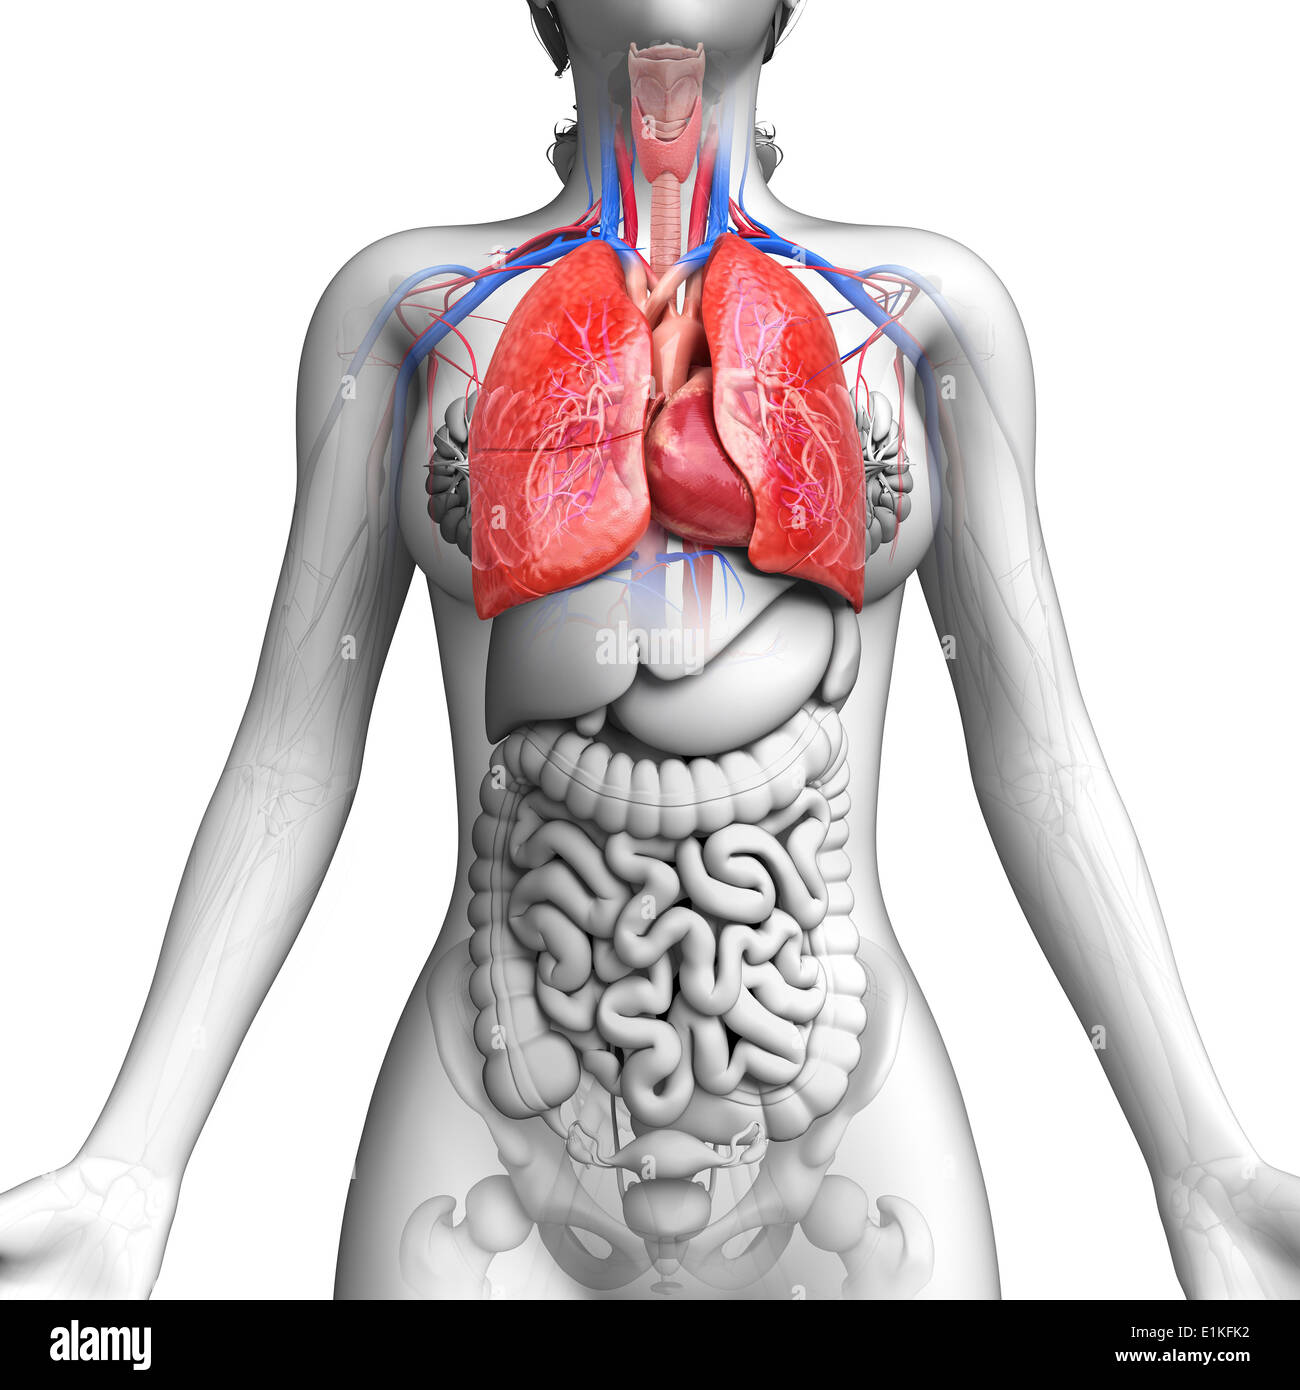 Female Intestinal Anatomy Stock Photos & Female Intestinal Anatomy ...